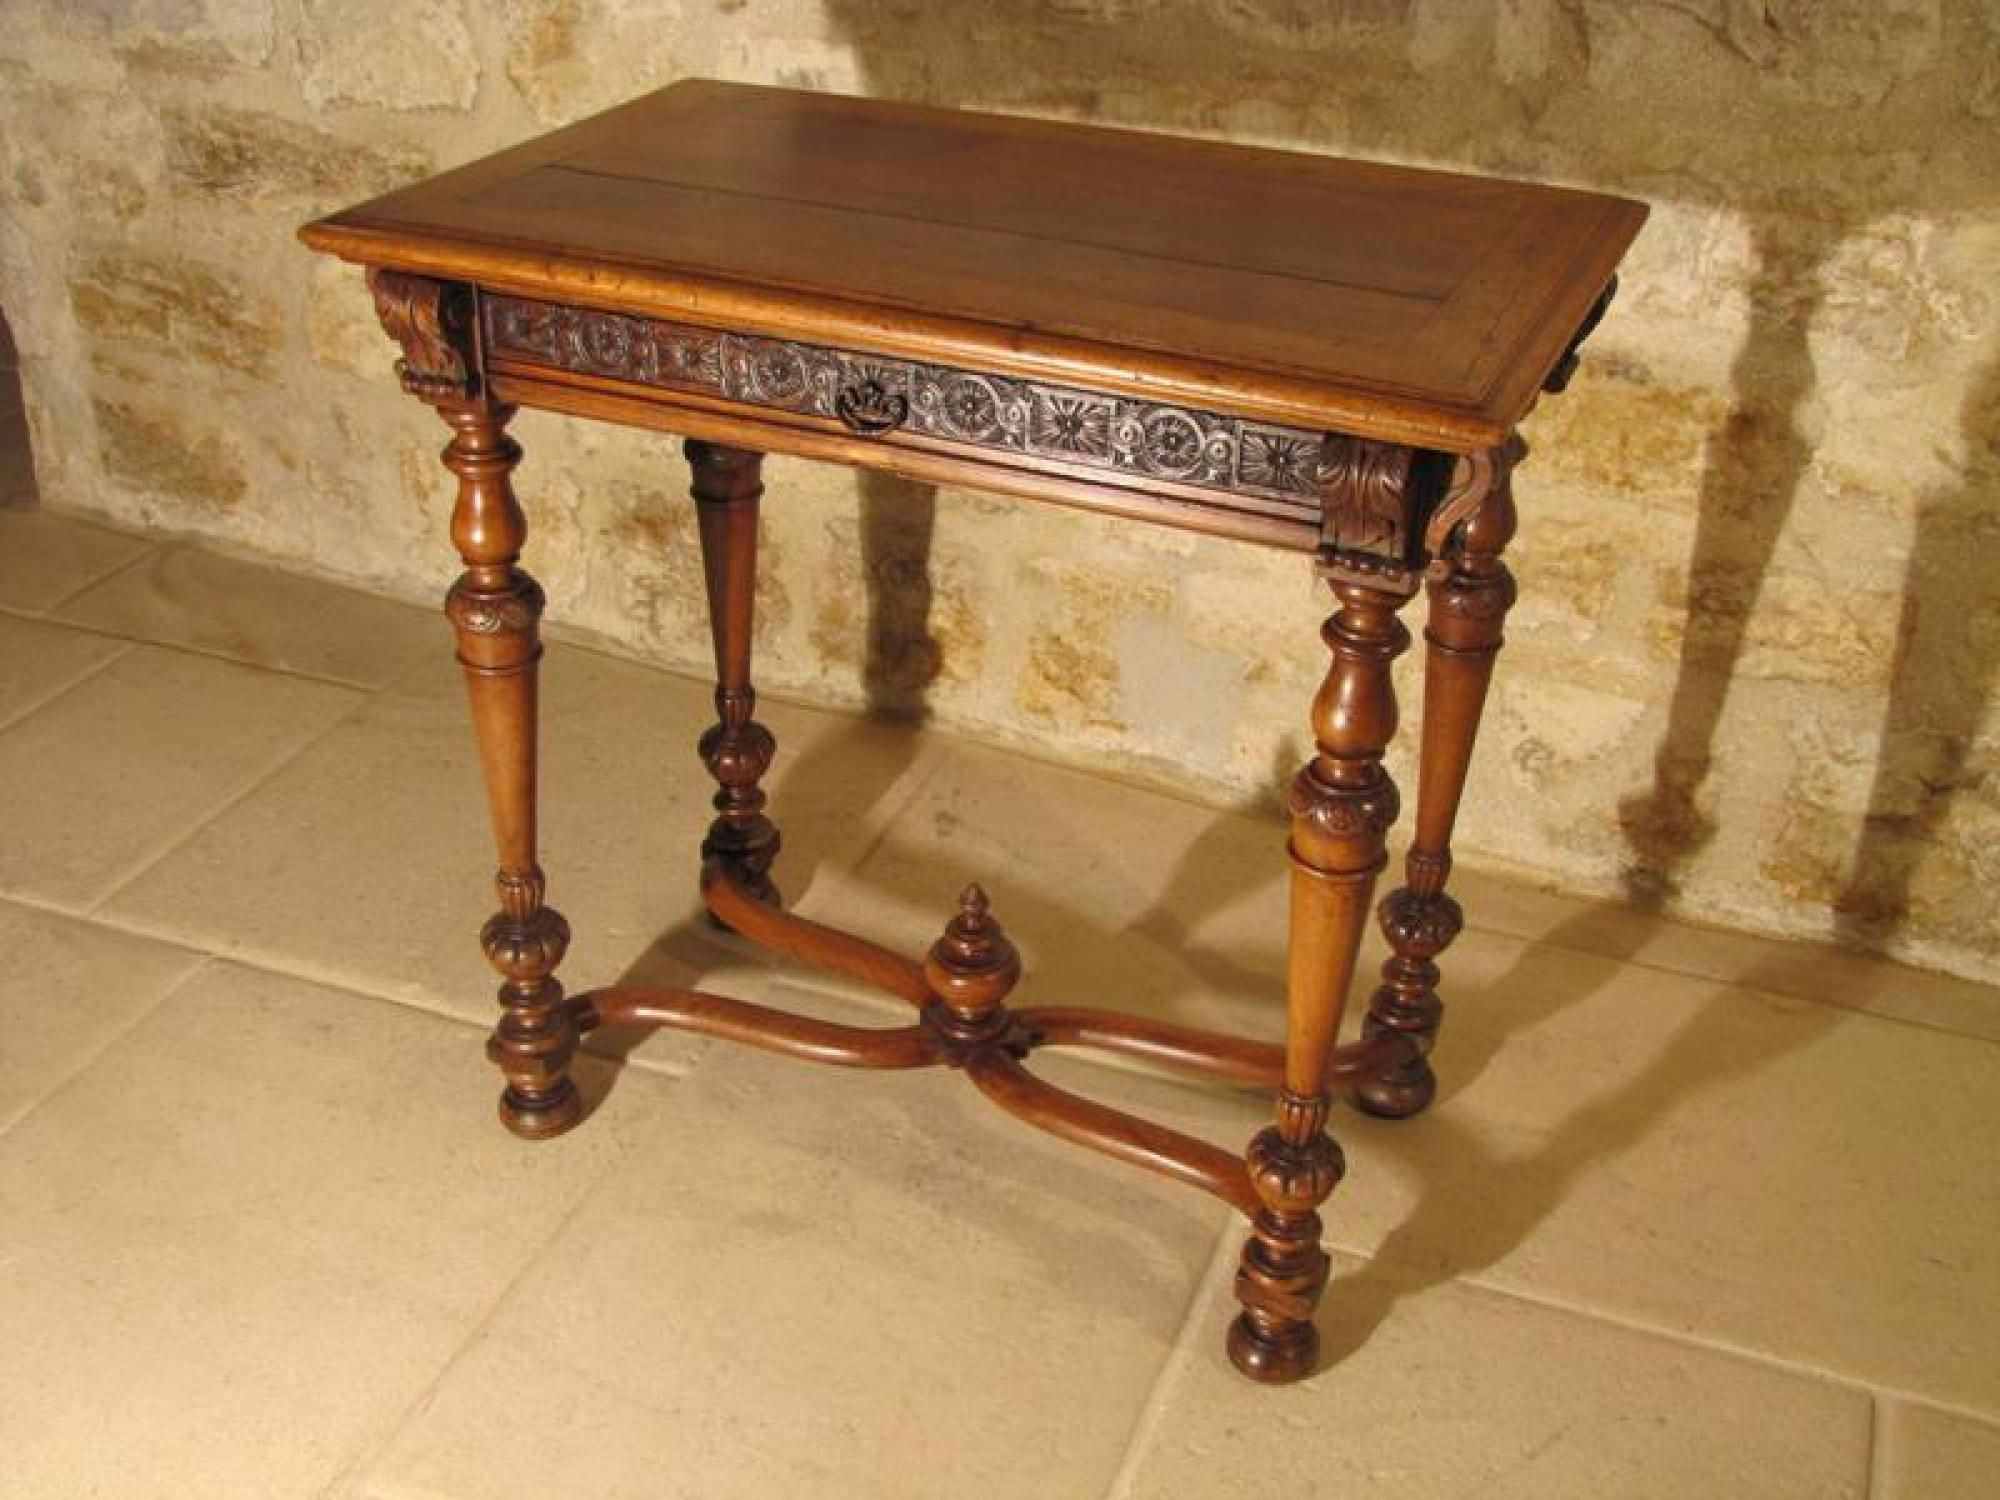 Antique gothic revival furniture for sale - Antique For Sale Renaissance Revival Table With Balusters Writing Desk Table Desk Other Piece Of Furniture